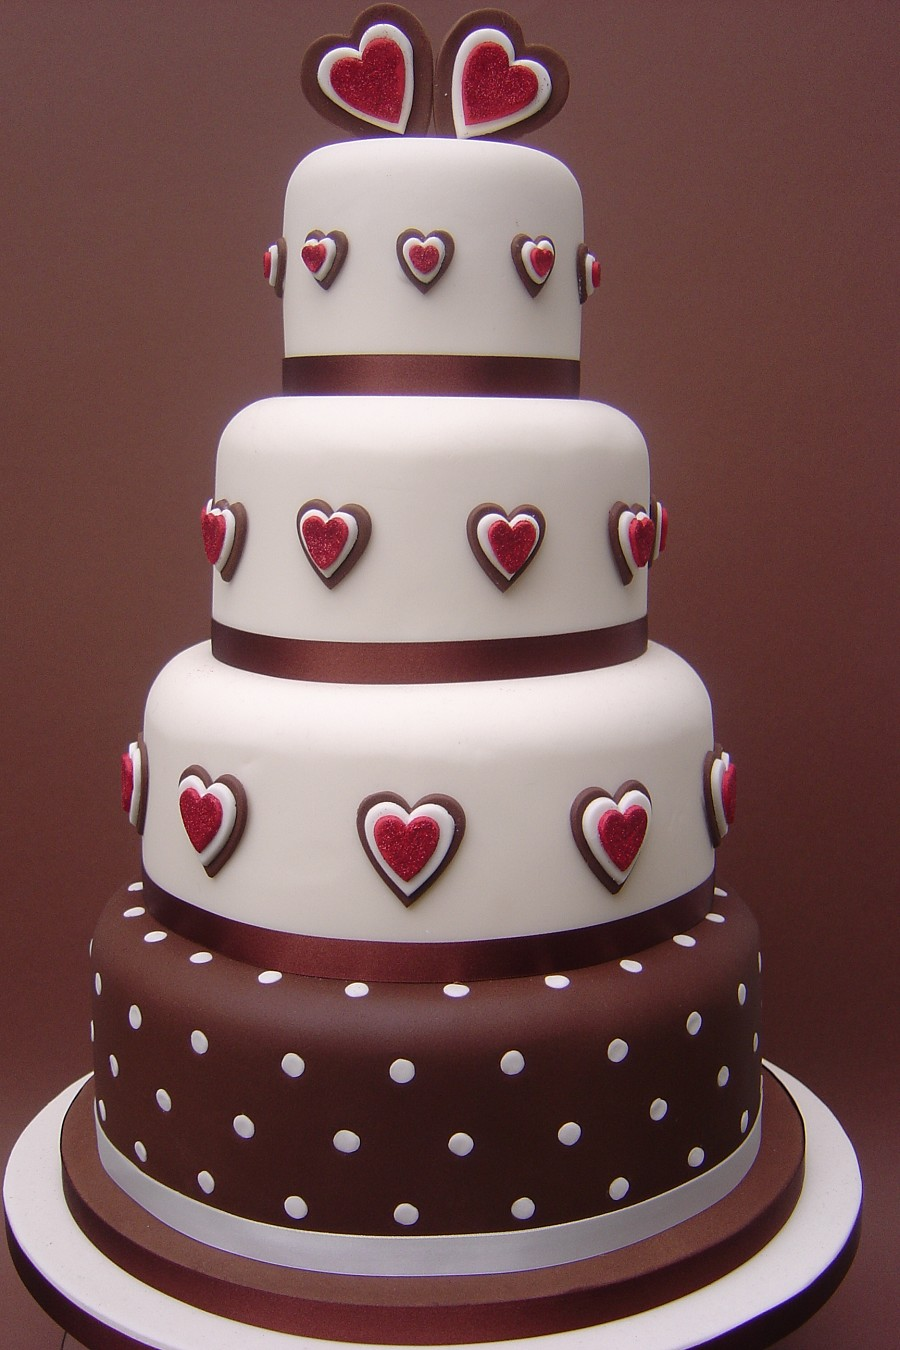 Cake K Design : Wedding cake Ideas collection